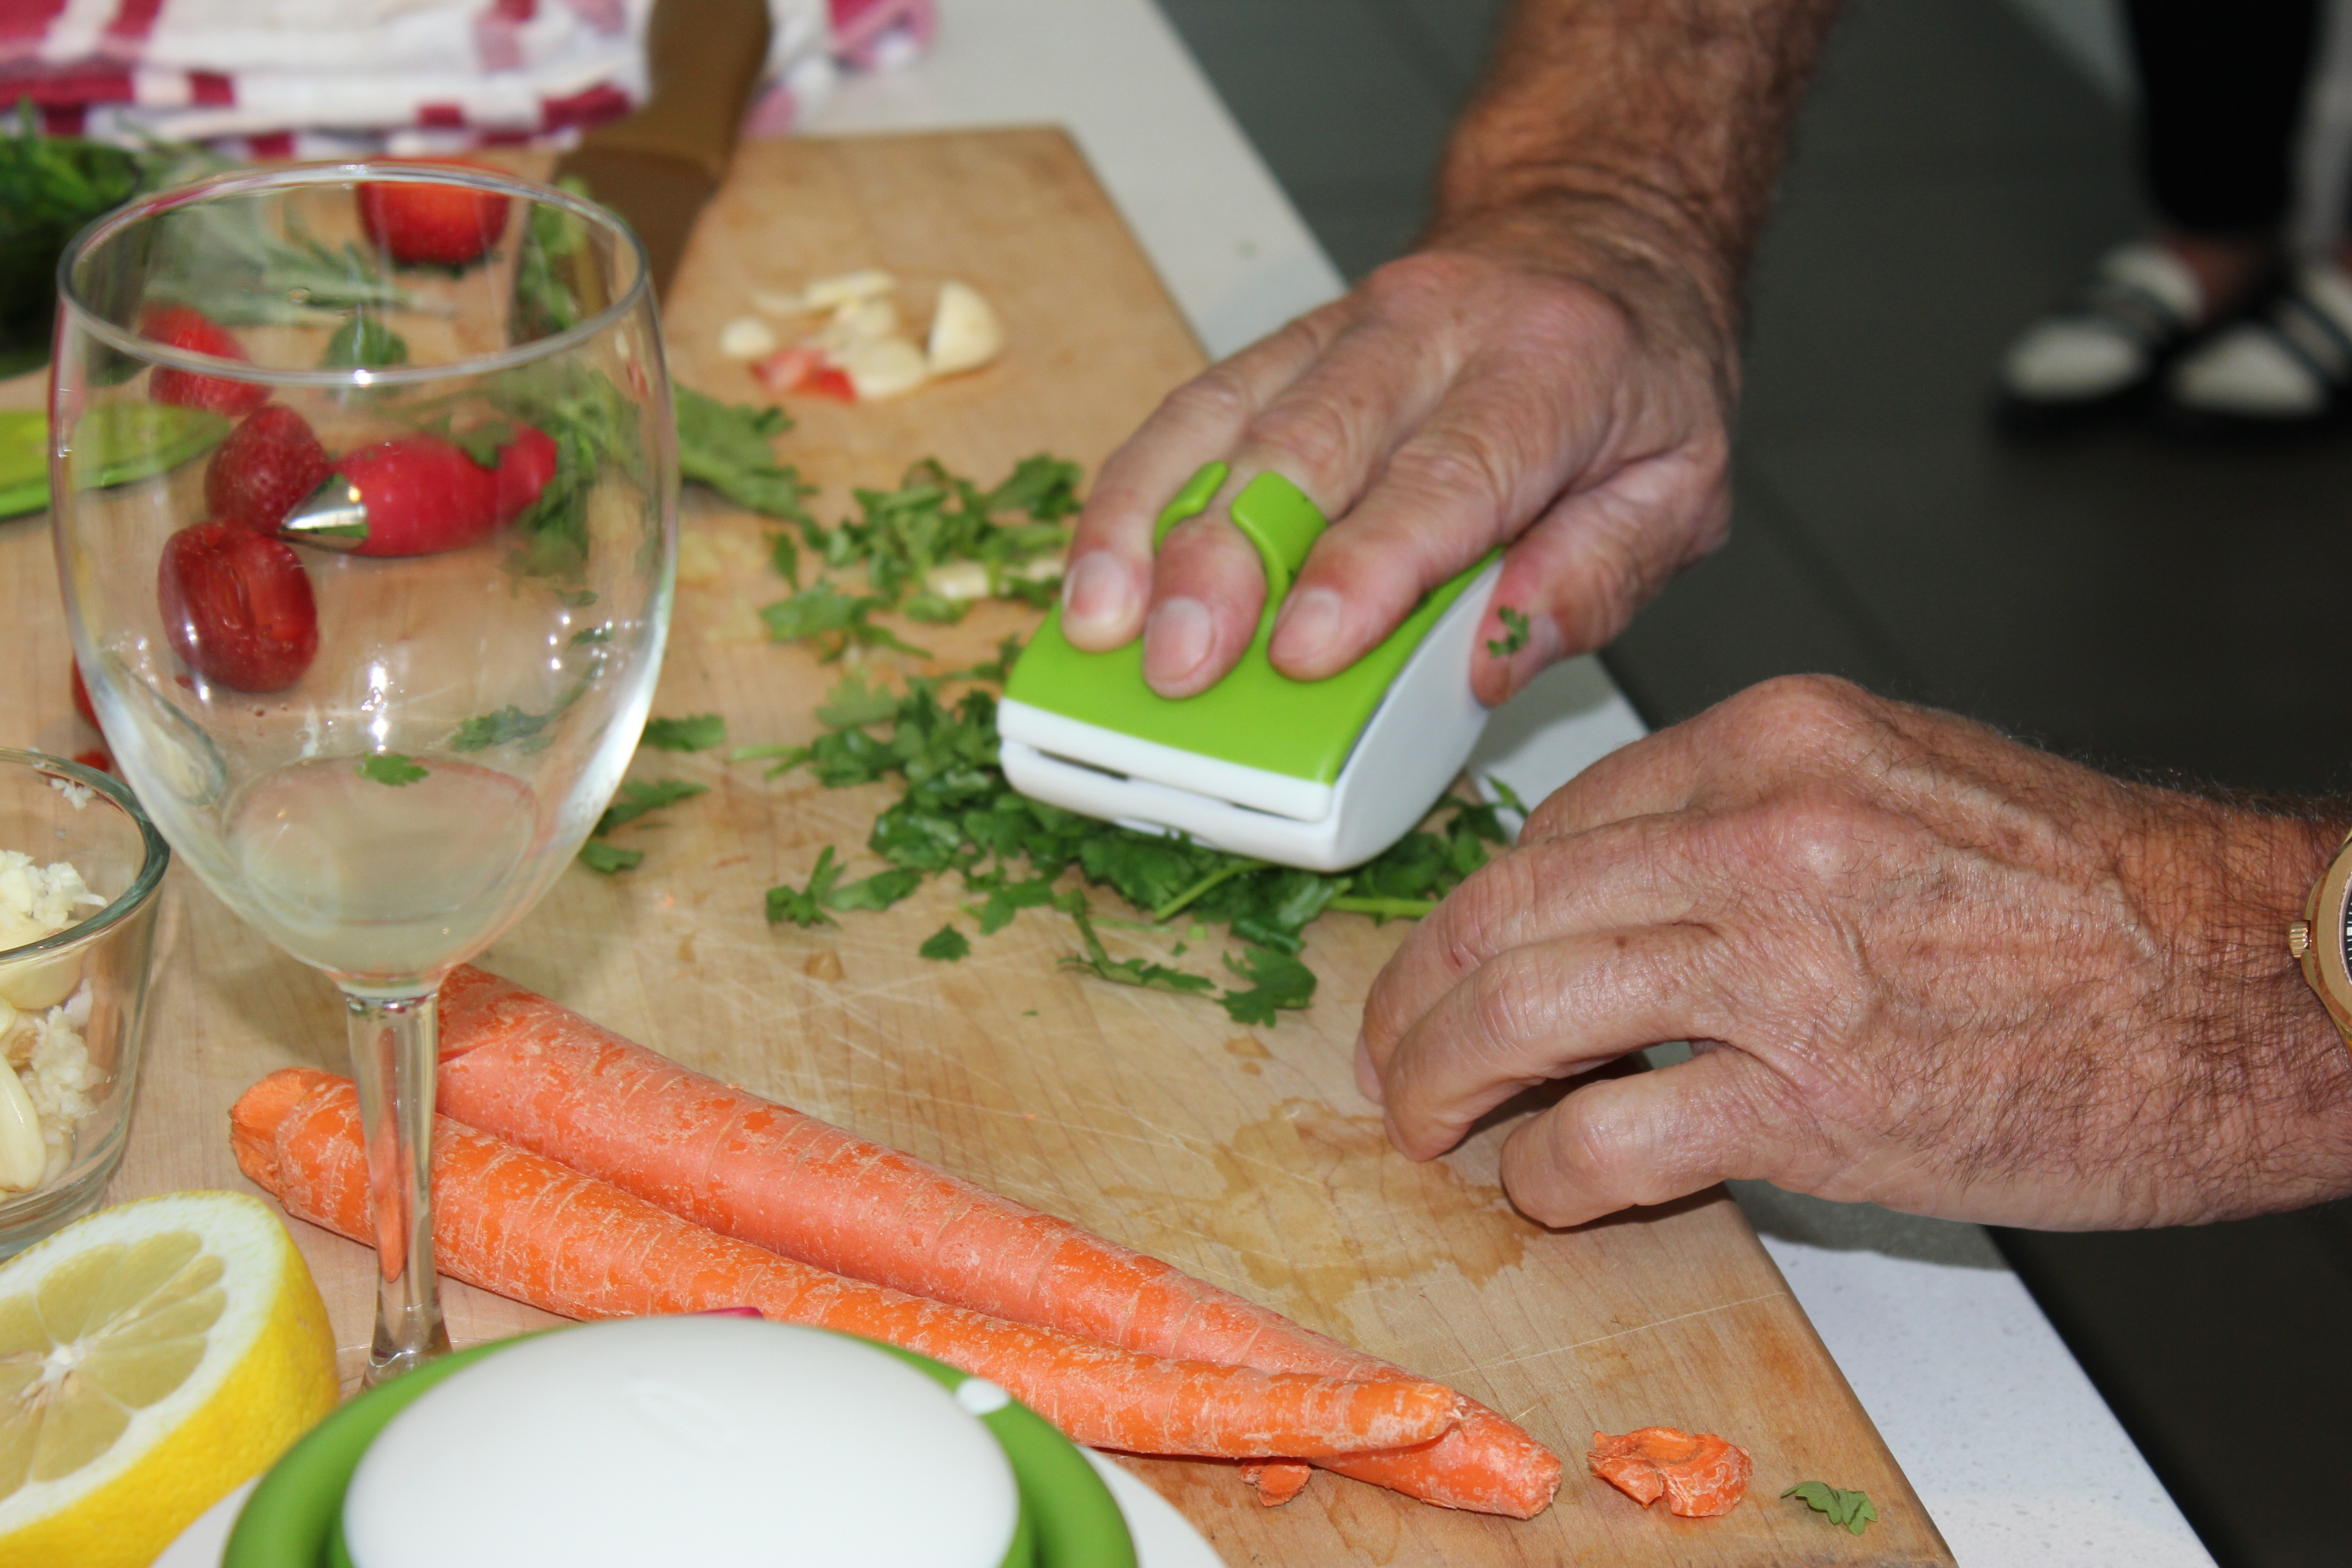 I love the bright colors of the Chef'n products, but for those who know me, the green and white ones call my name! Here's one for chopping small herbs.